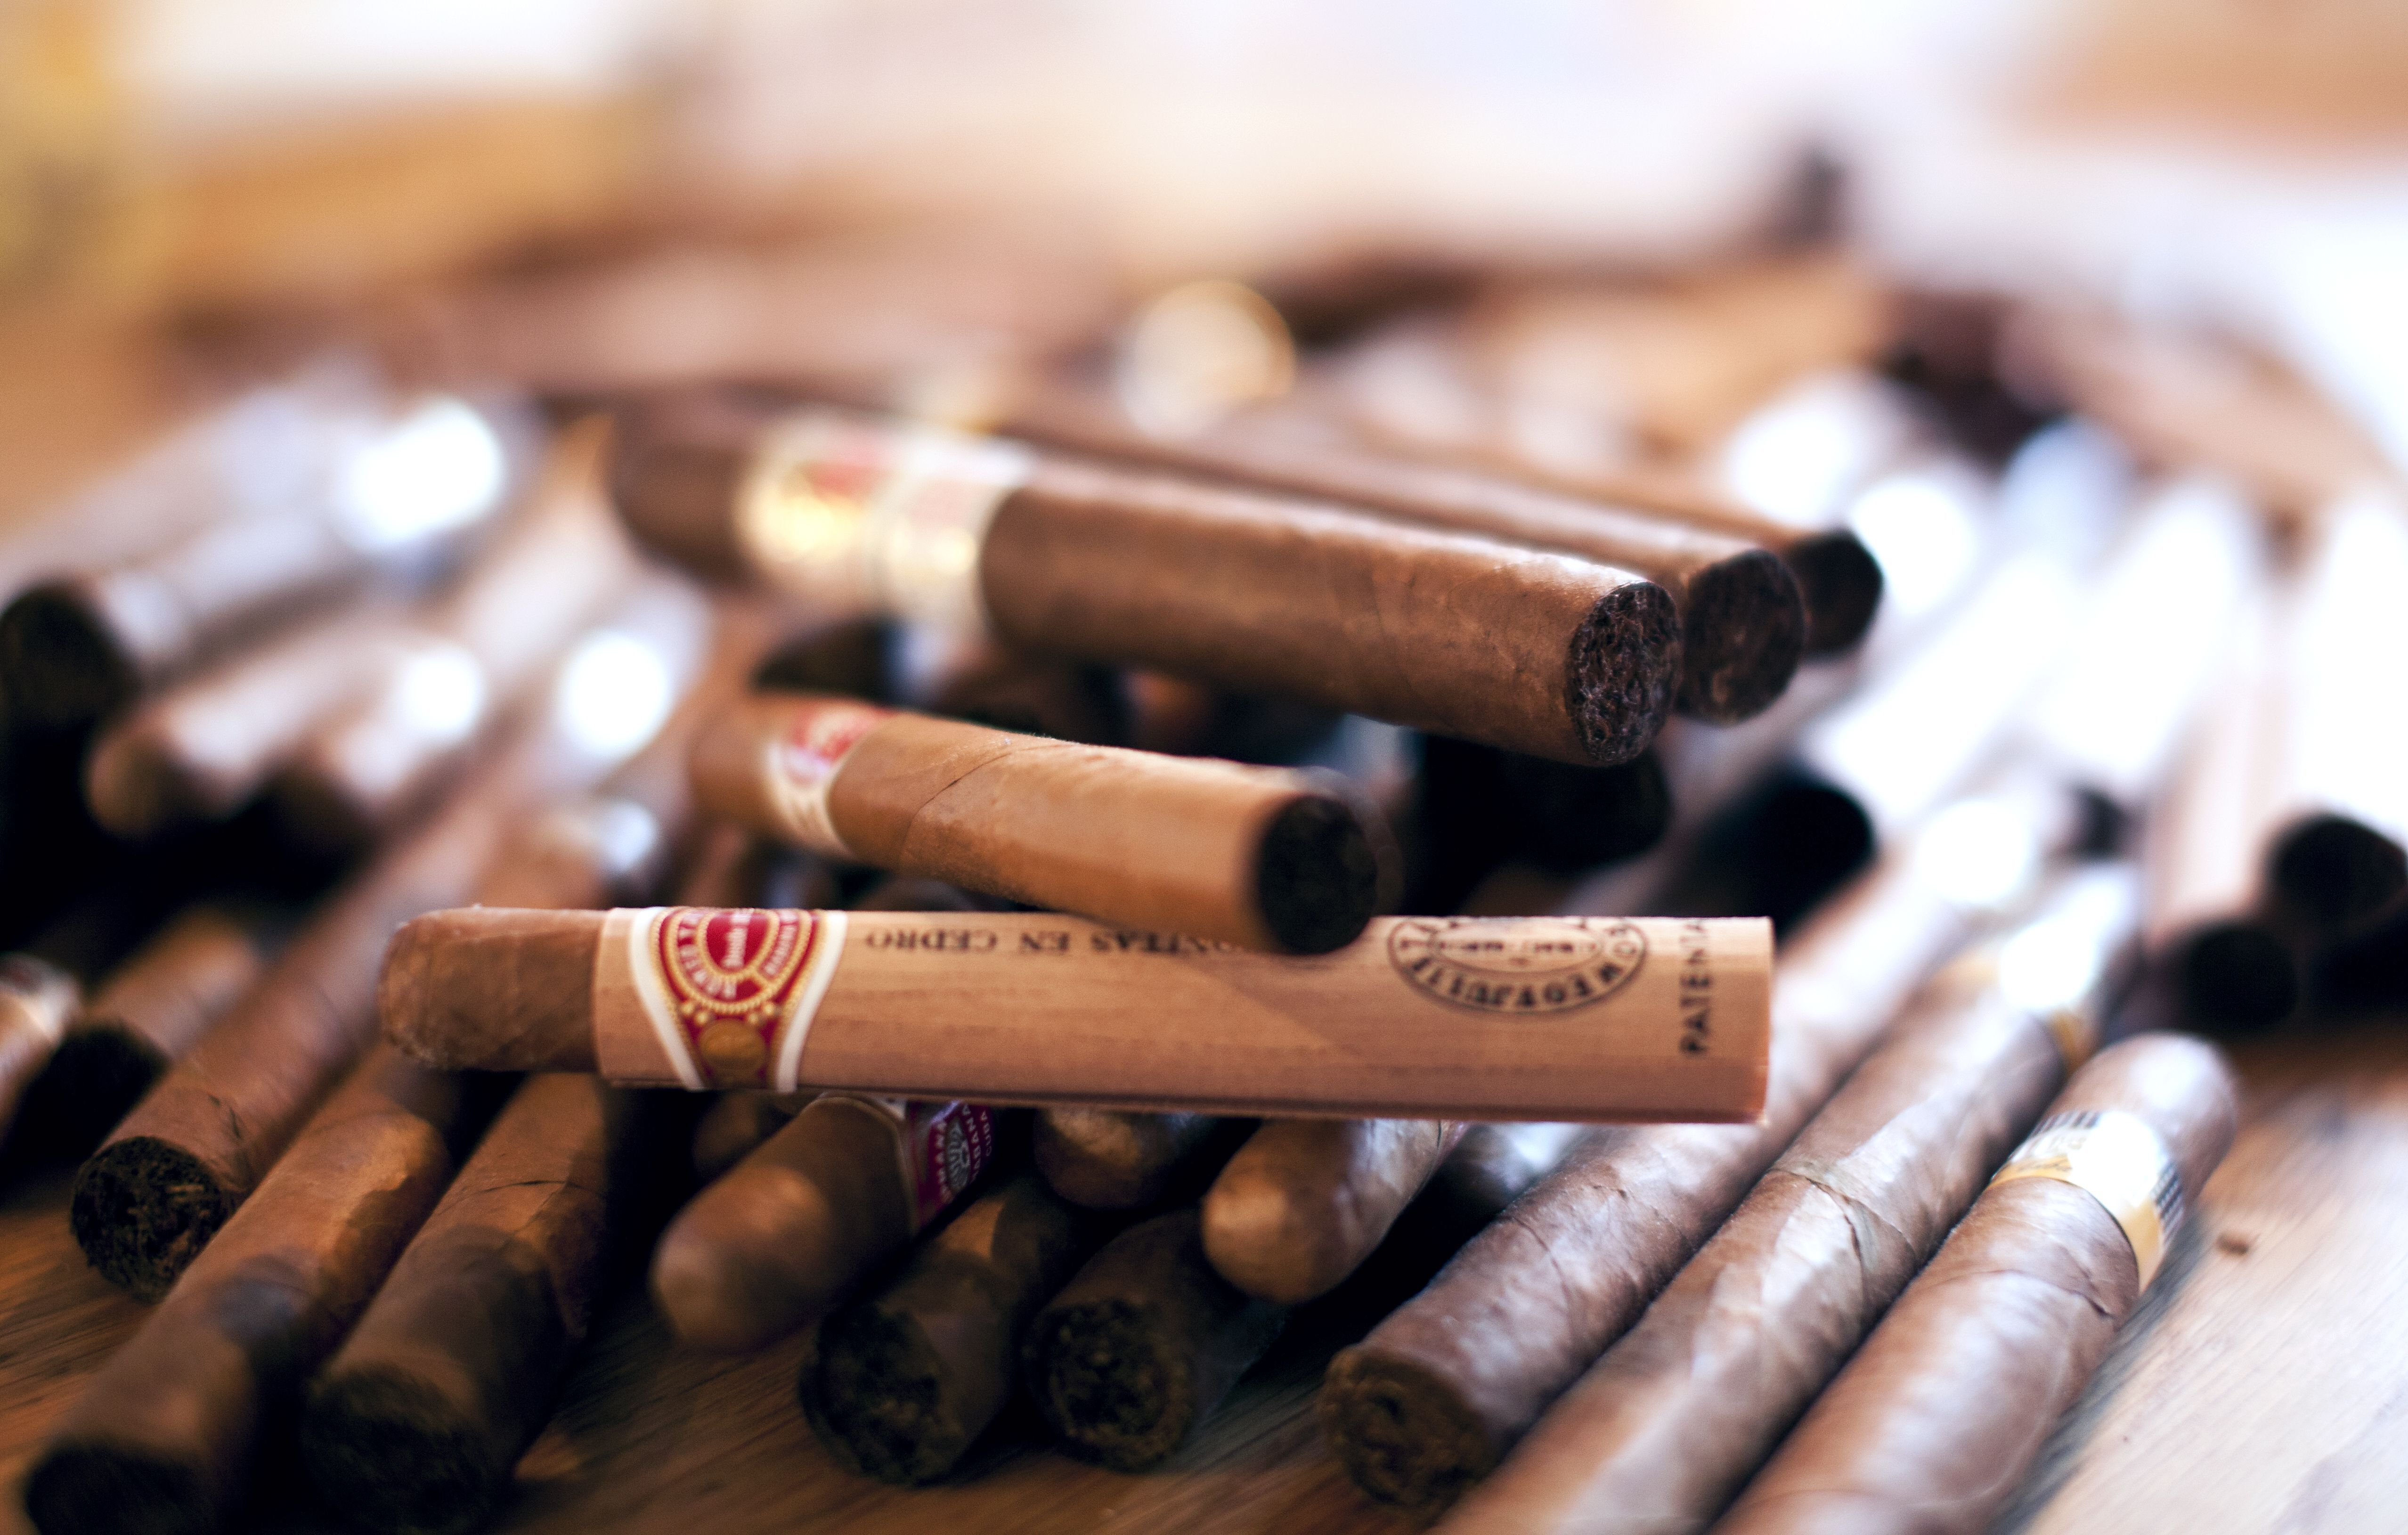 22 cigar hd wallpapers | background images - wallpaper abyss